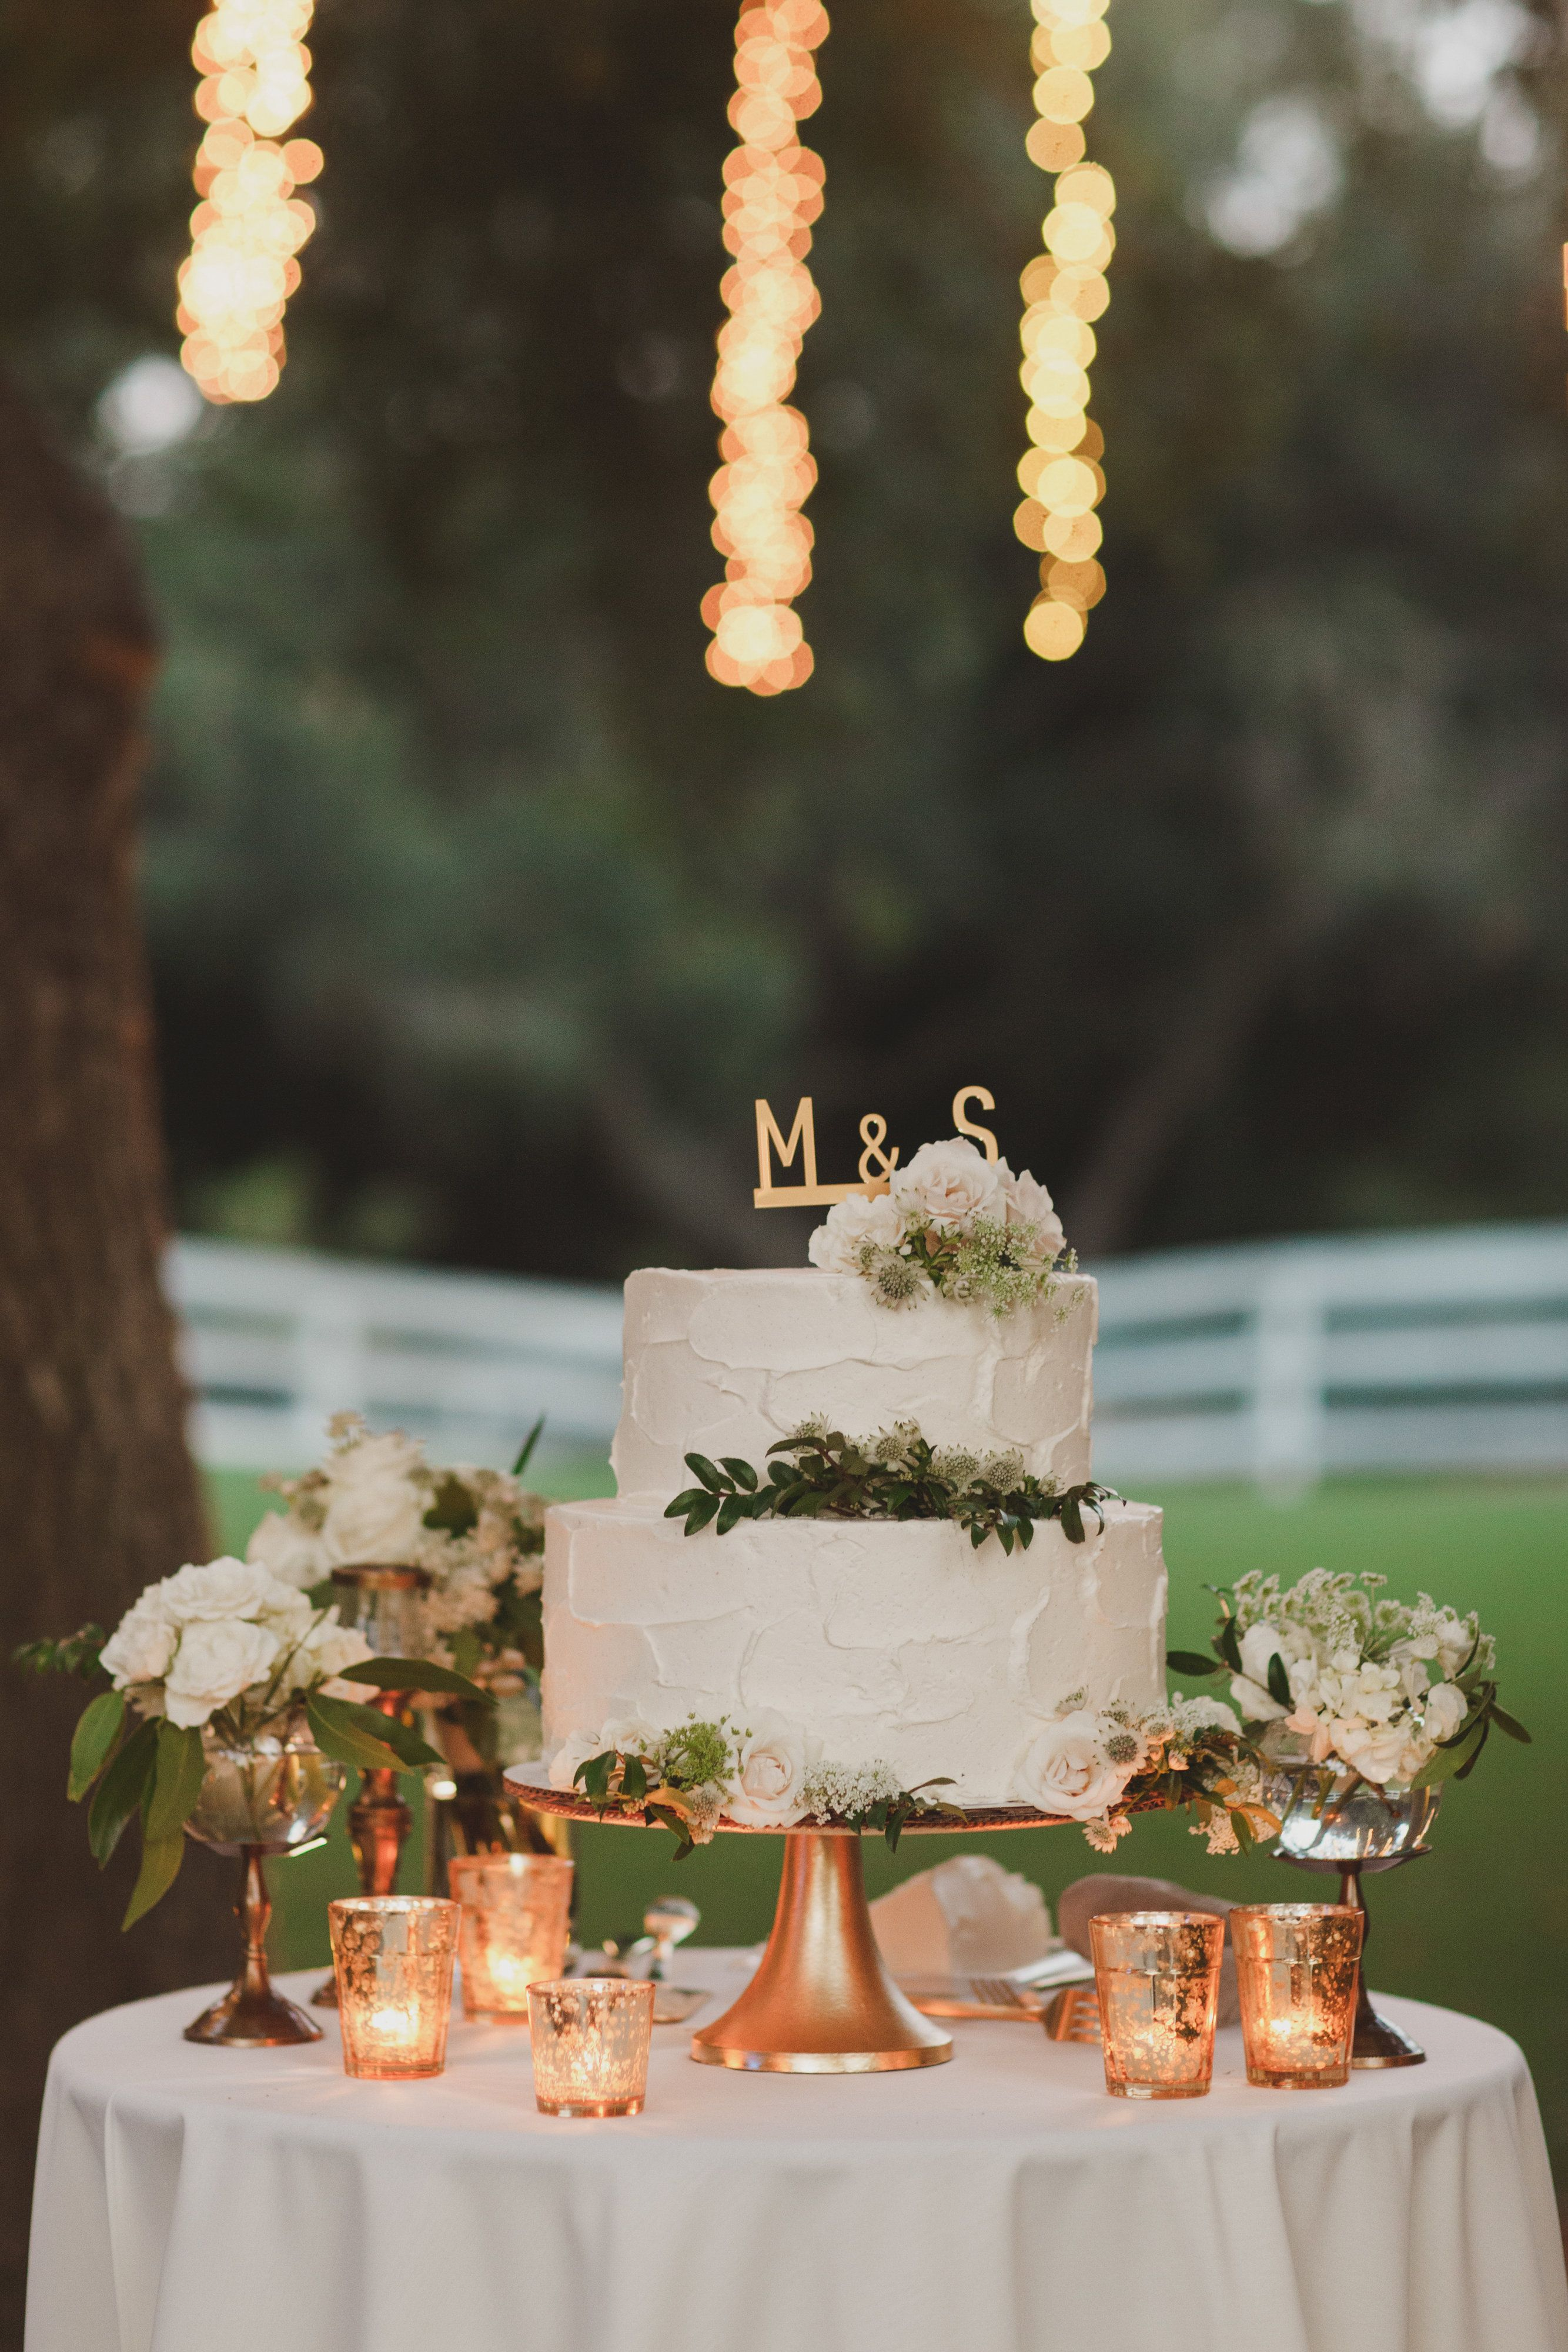 Simply Tasteful Wedding | Decoration table mariage, Idée ...